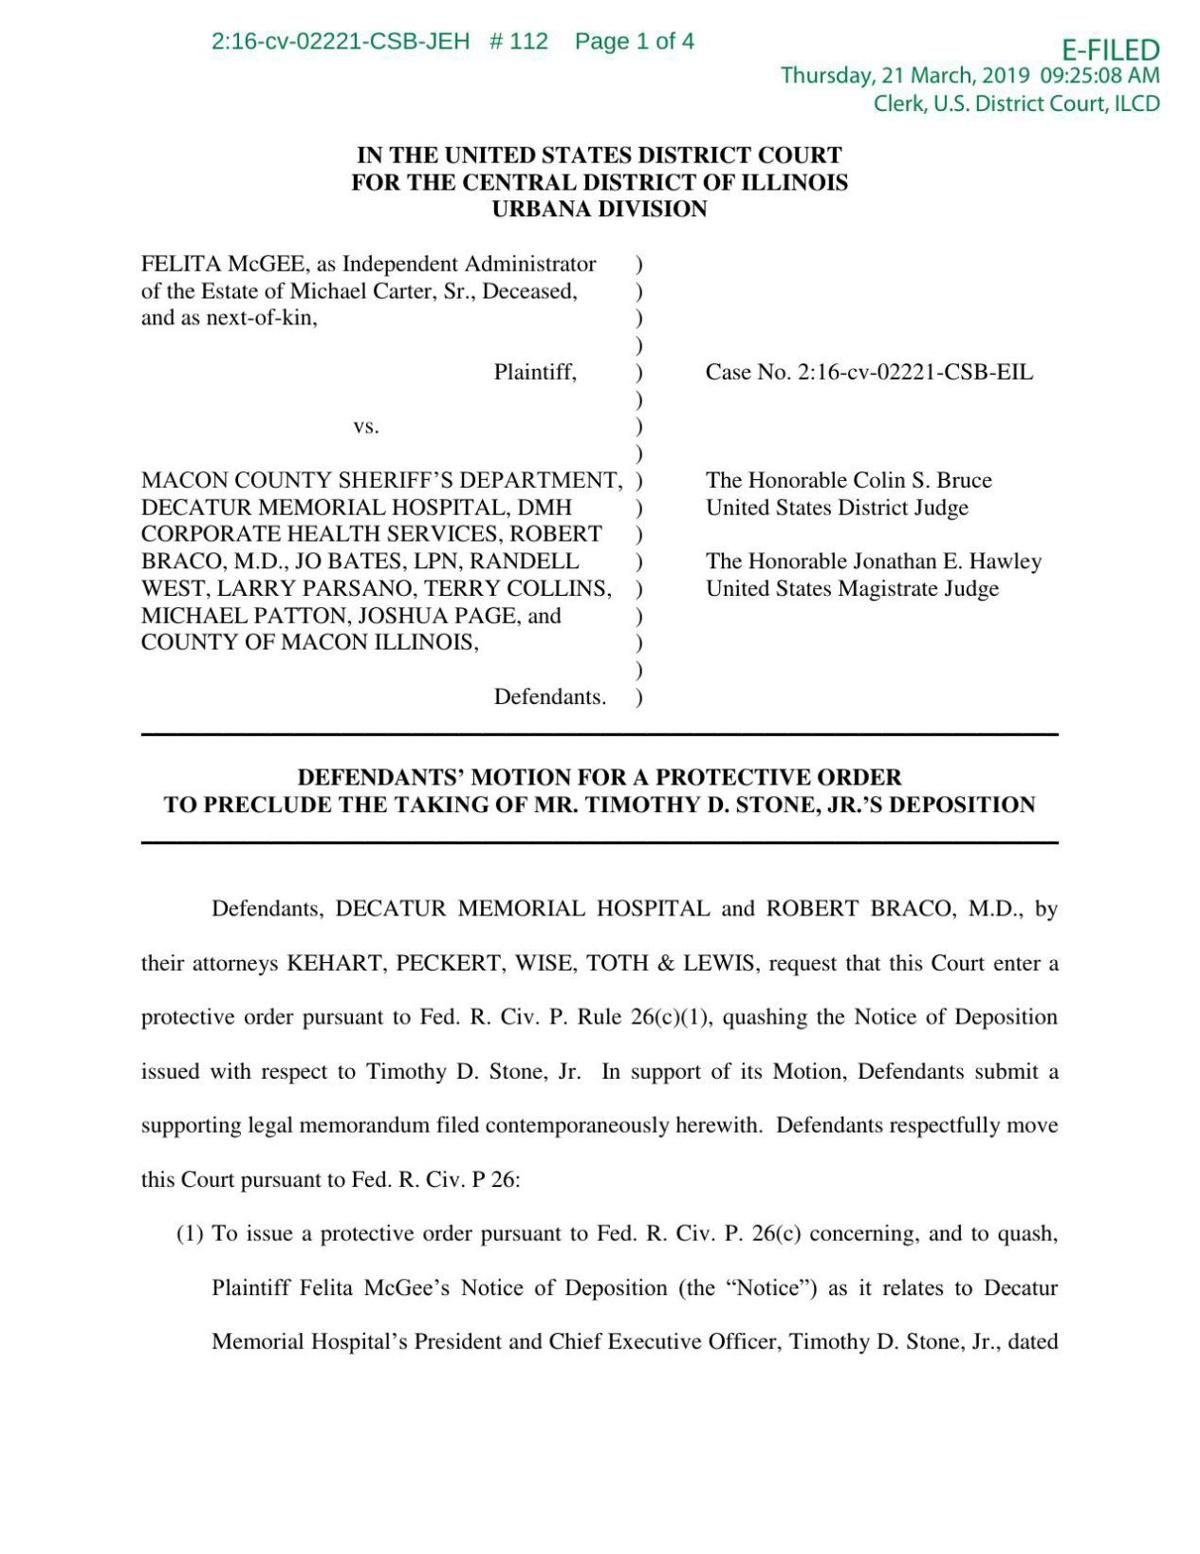 Motion to Preclude Tim Stone Deposition - 3/21/2019